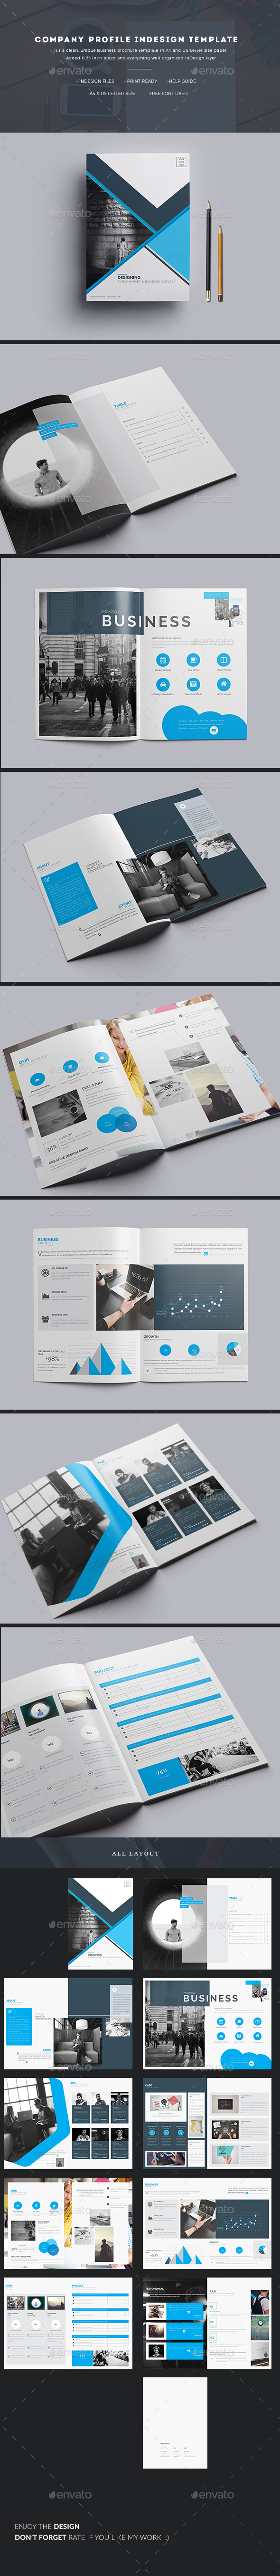 Company profile indesign template by addaxx graphicriver company profile indesign template corporate brochures pronofoot35fo Gallery